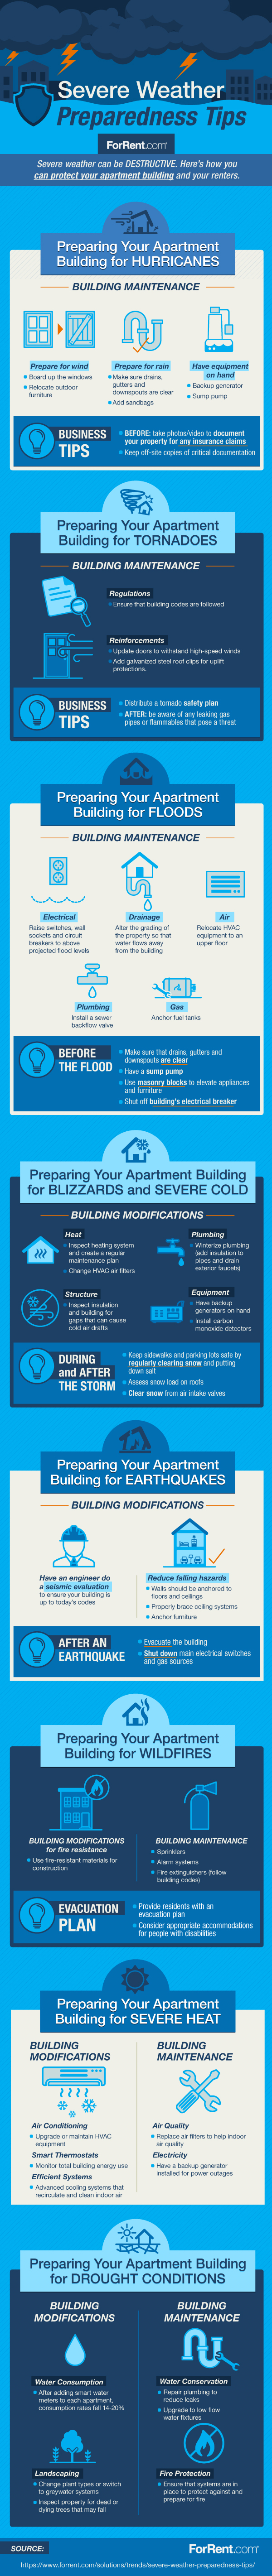 Bad Weather Alert: How to Protect Your Homes from Severe Weather Conditions - Infographic